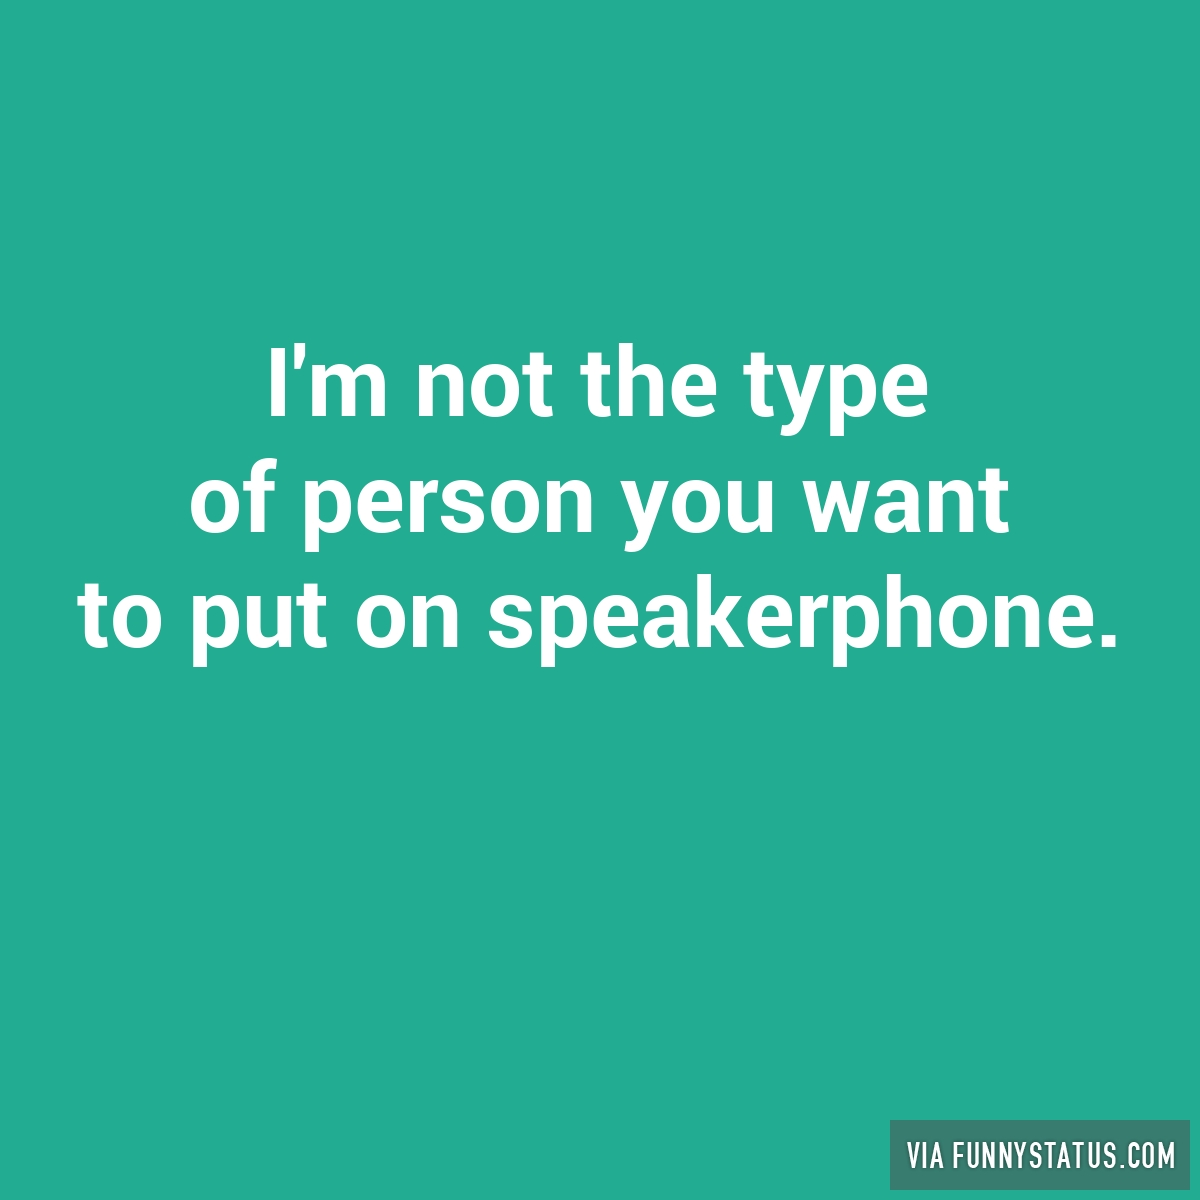 i m not the type of person you want to put on speakerphone